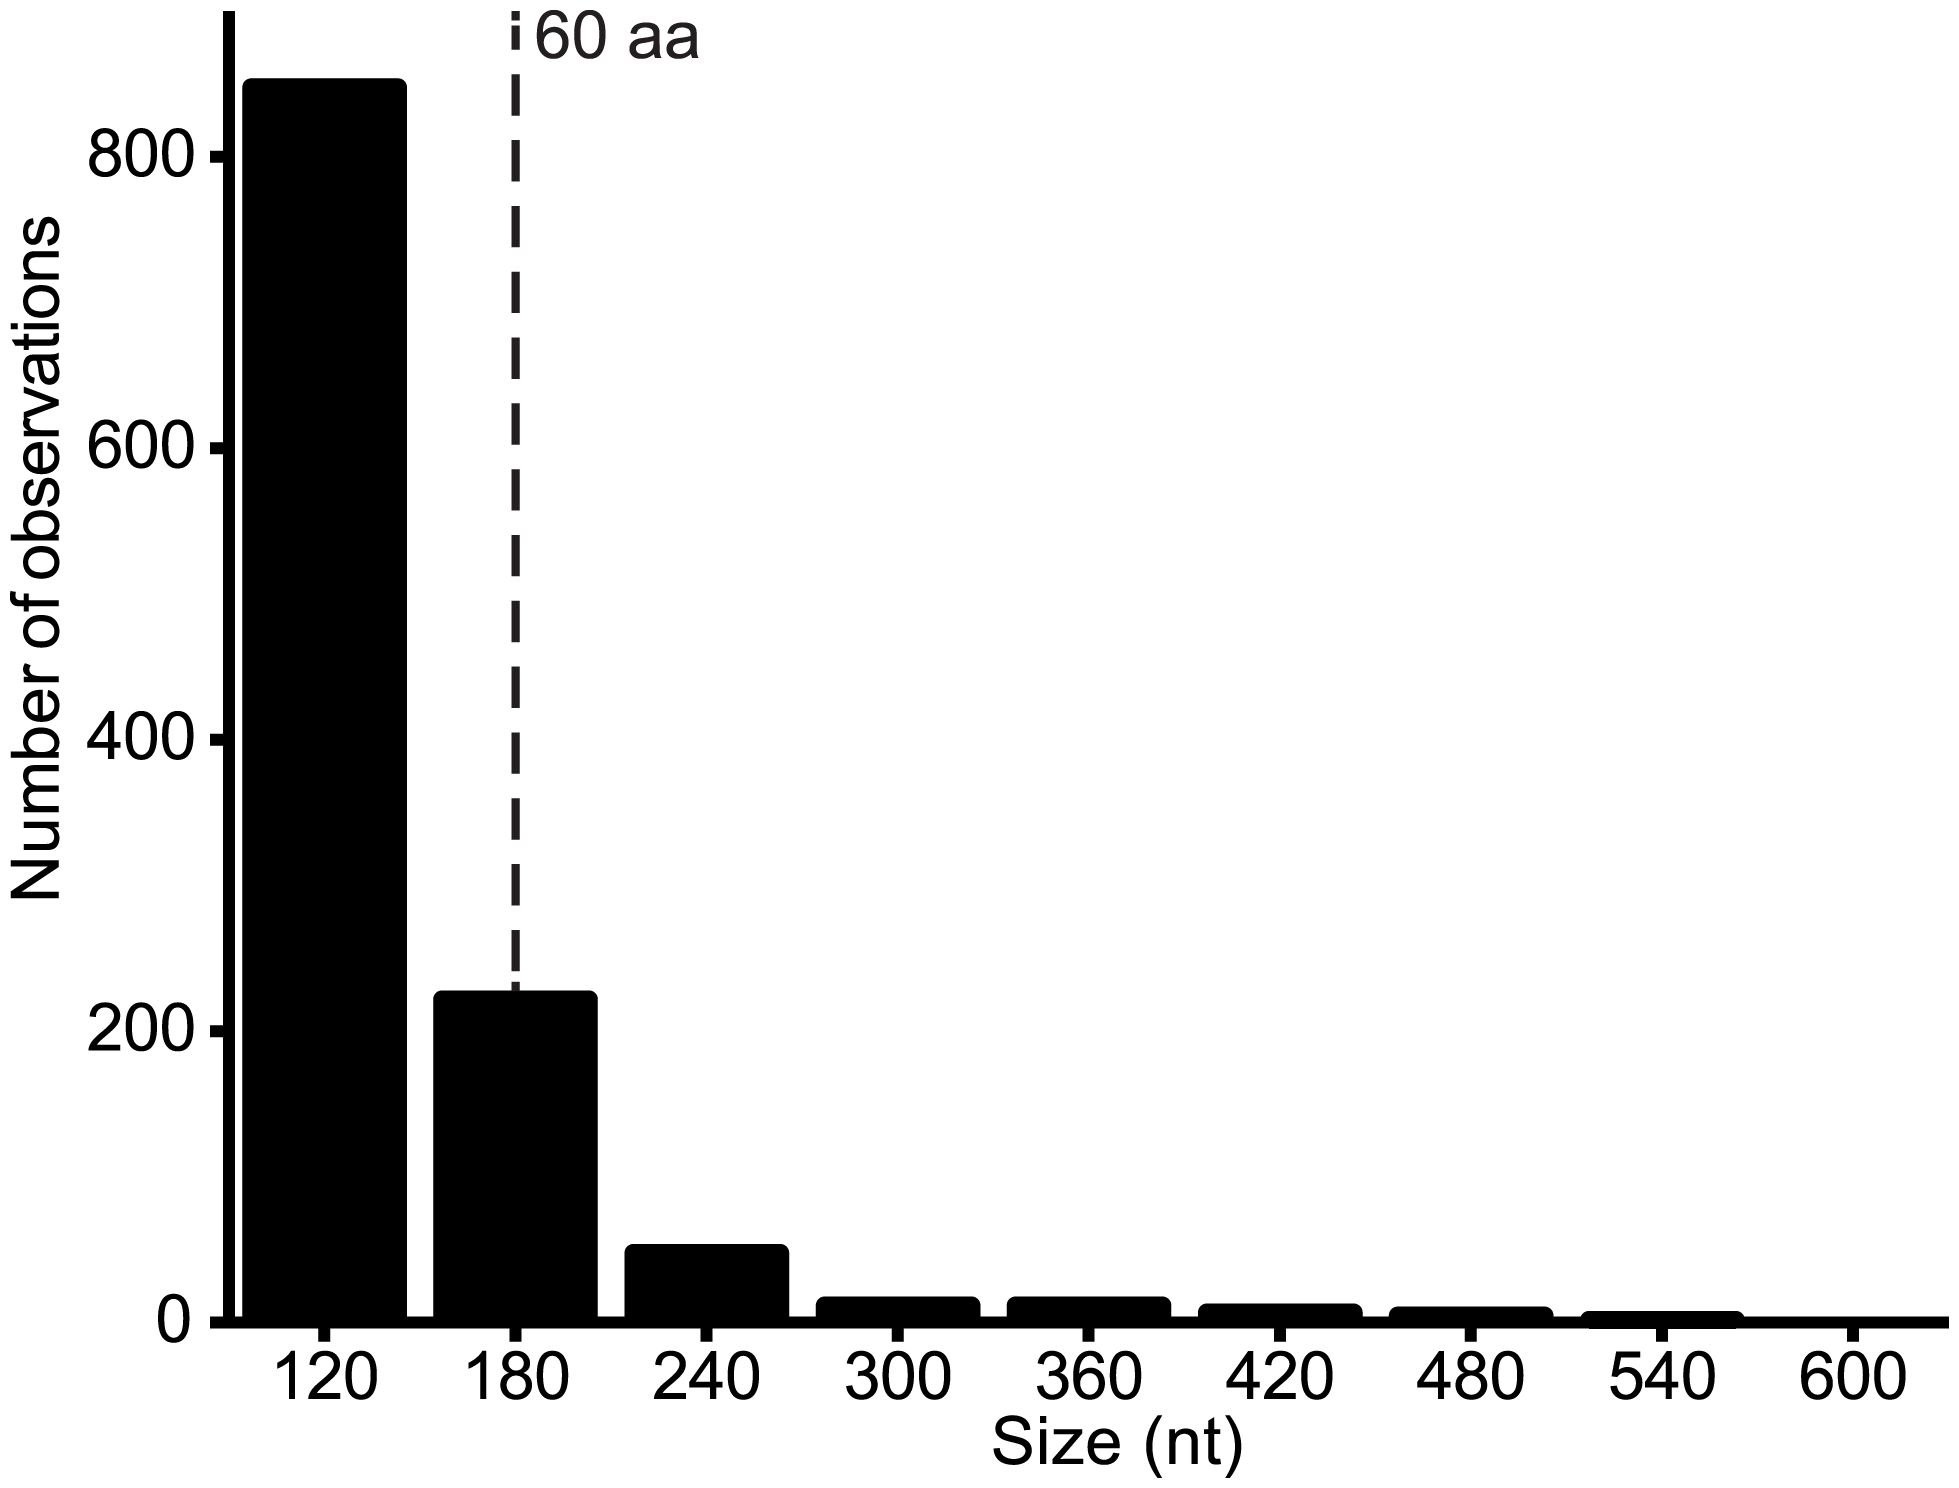 Number of alternative ORFs of various size ranges (nt) across the genome data set.